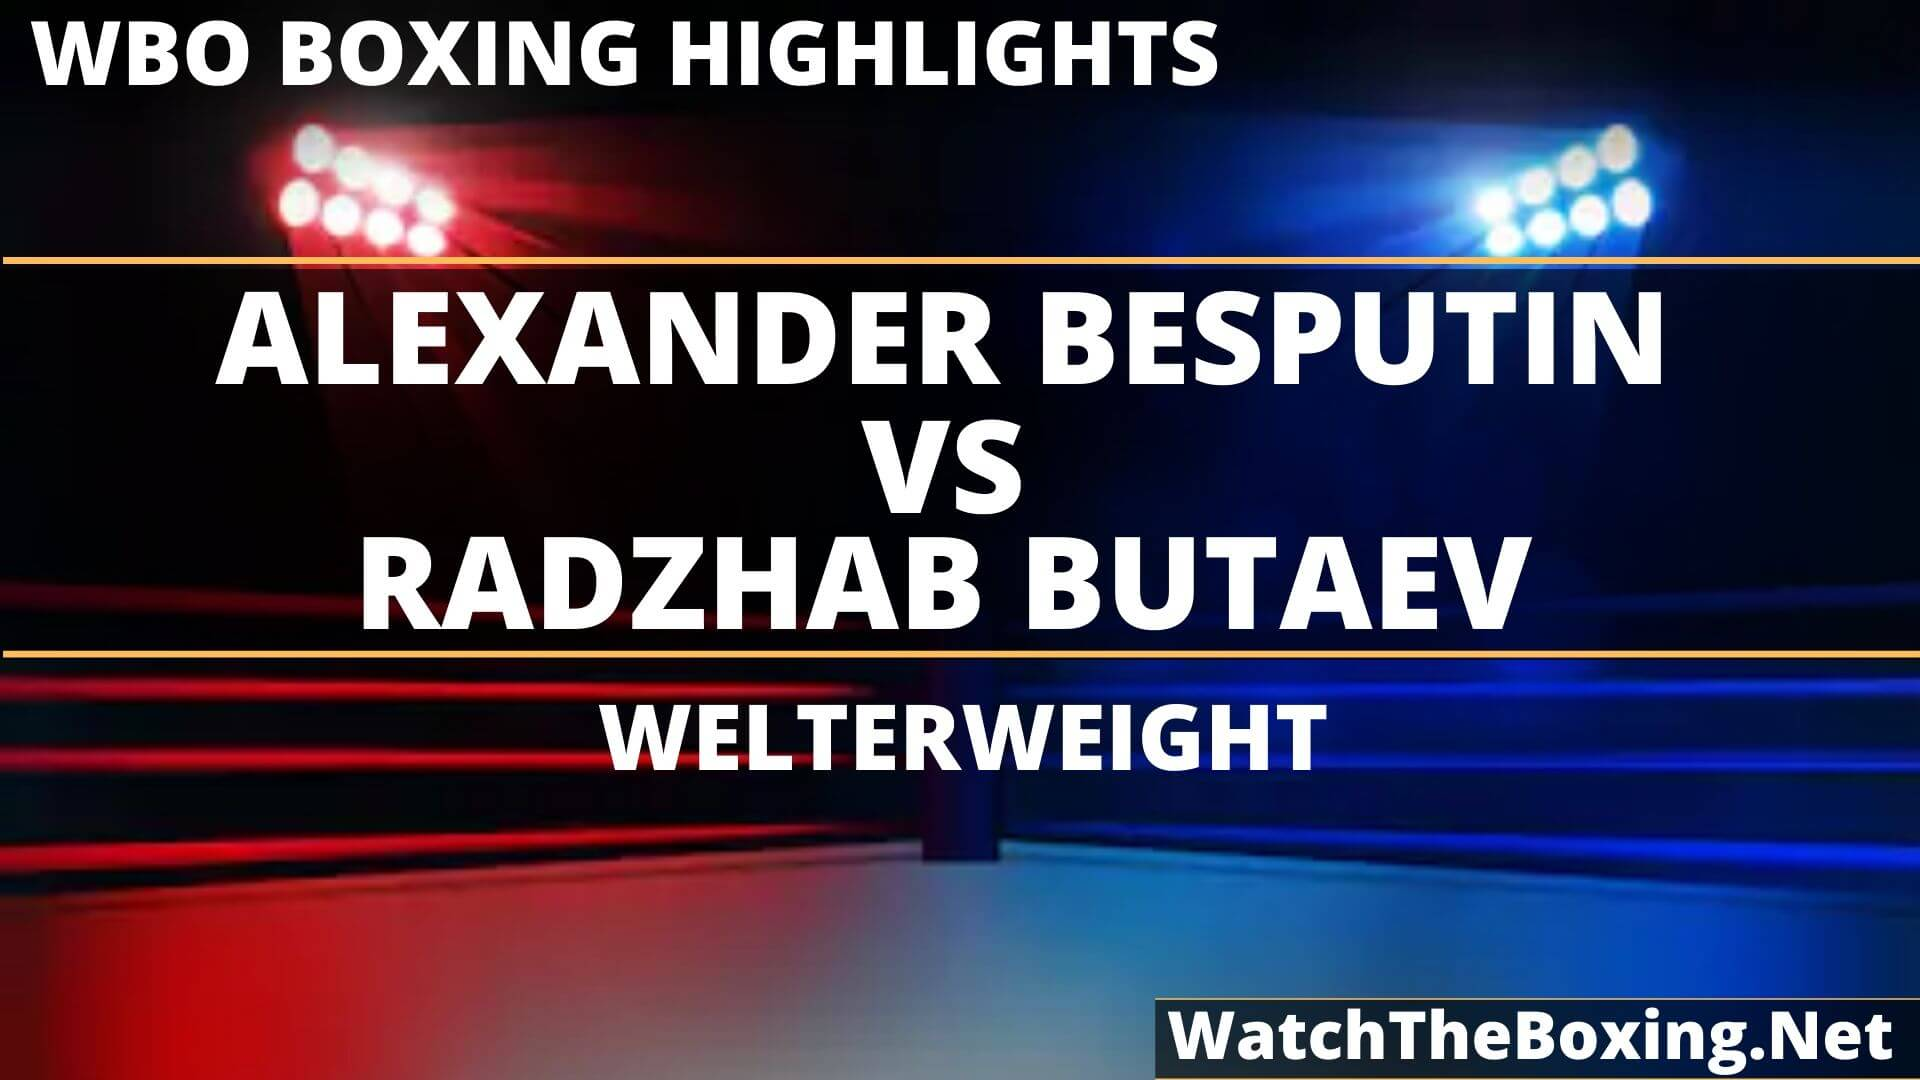 Alexander Besputin Vs Radzhab Butaev Highlights 2019